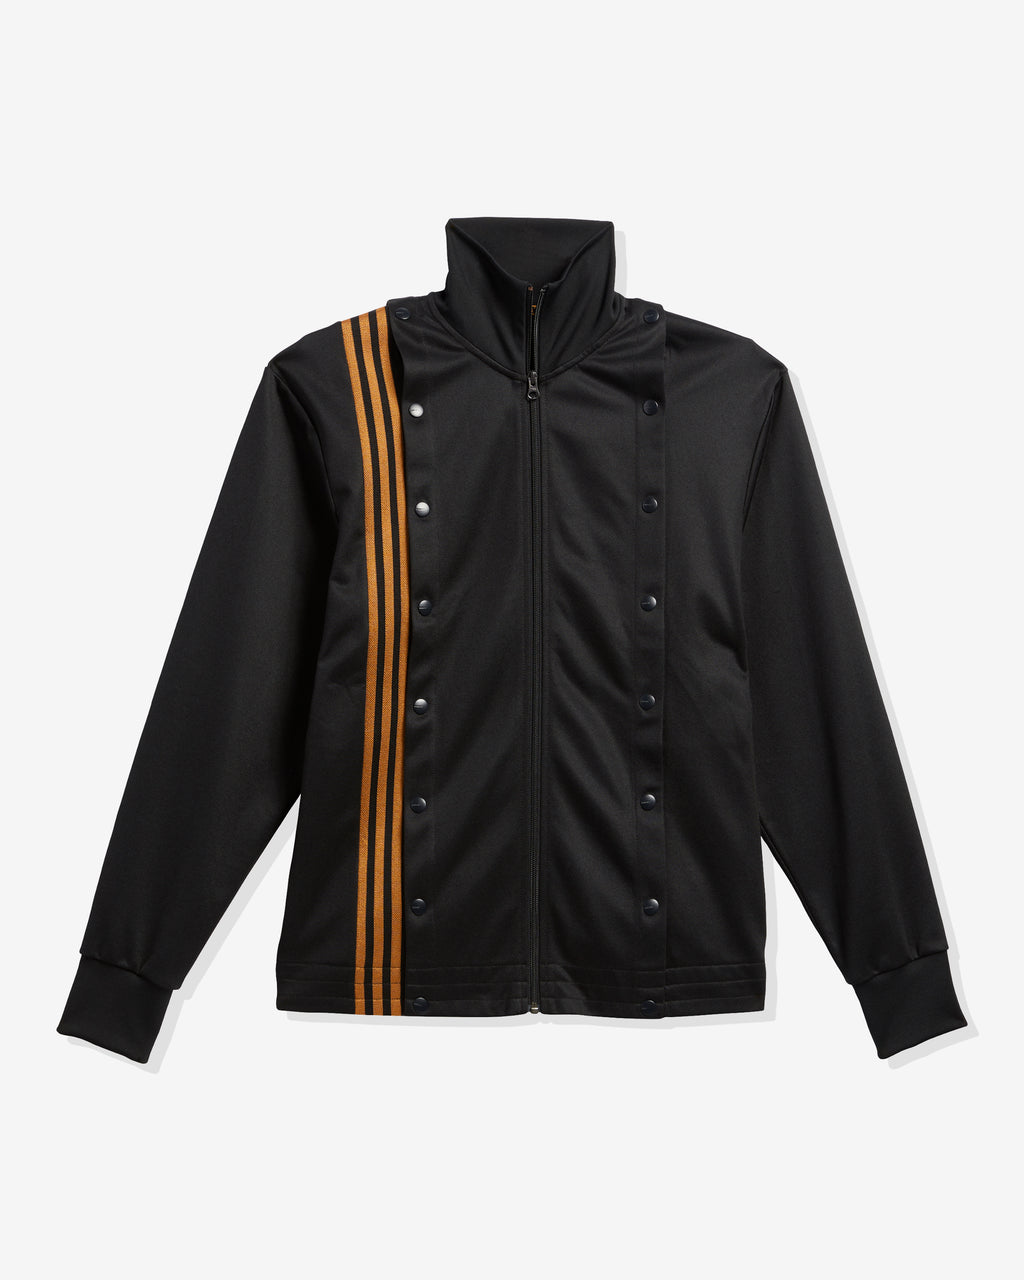 ADIDAS X IVP 4ALL TR JKT - BLACK